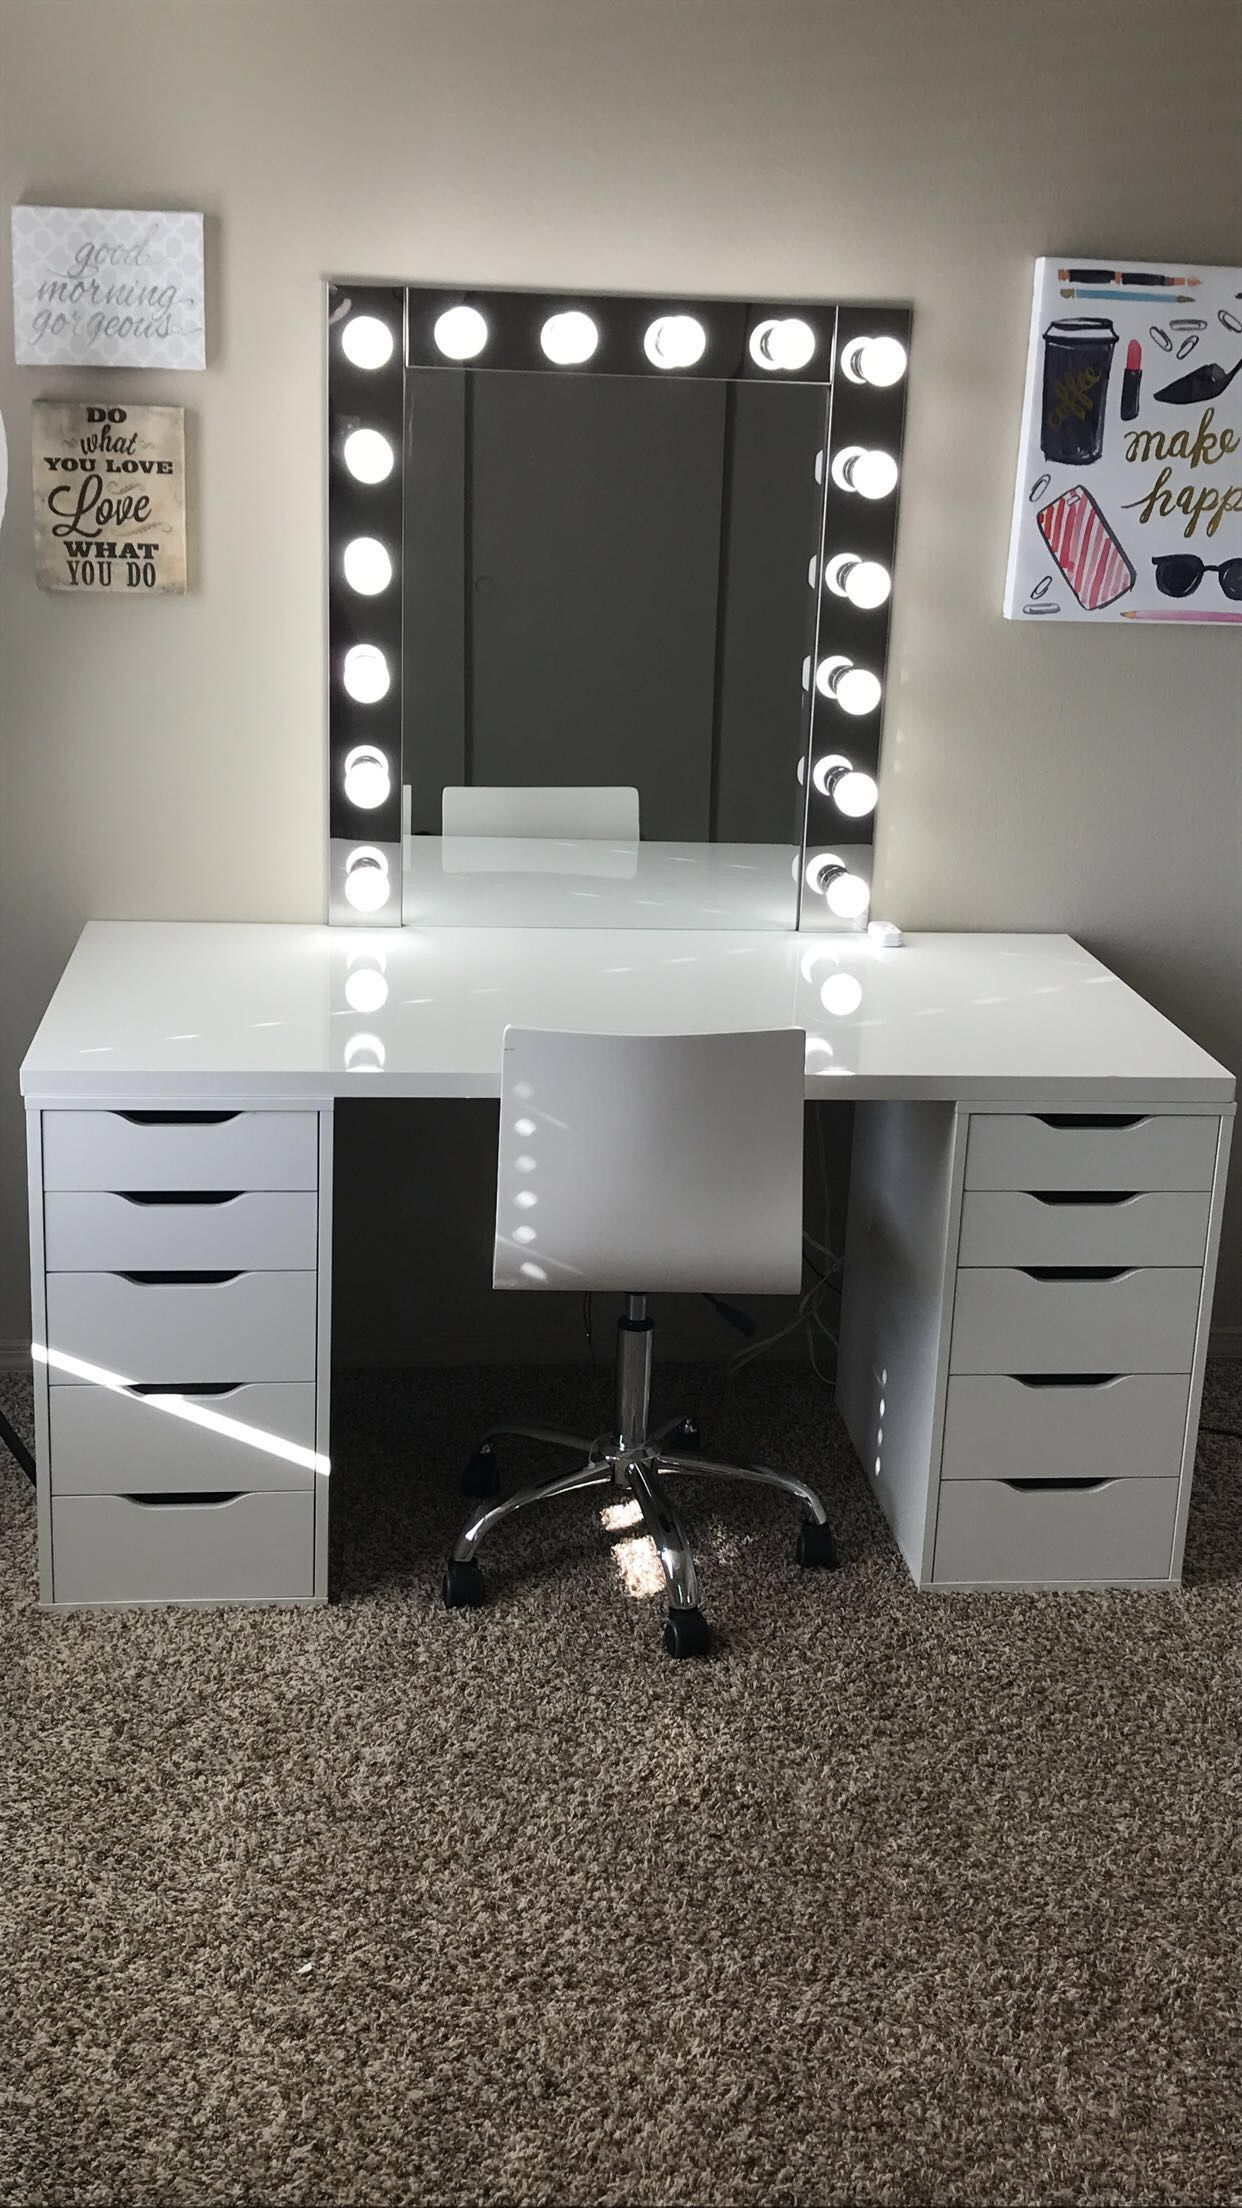 Makeup room inspiration! I love this vanity in my Makeup room